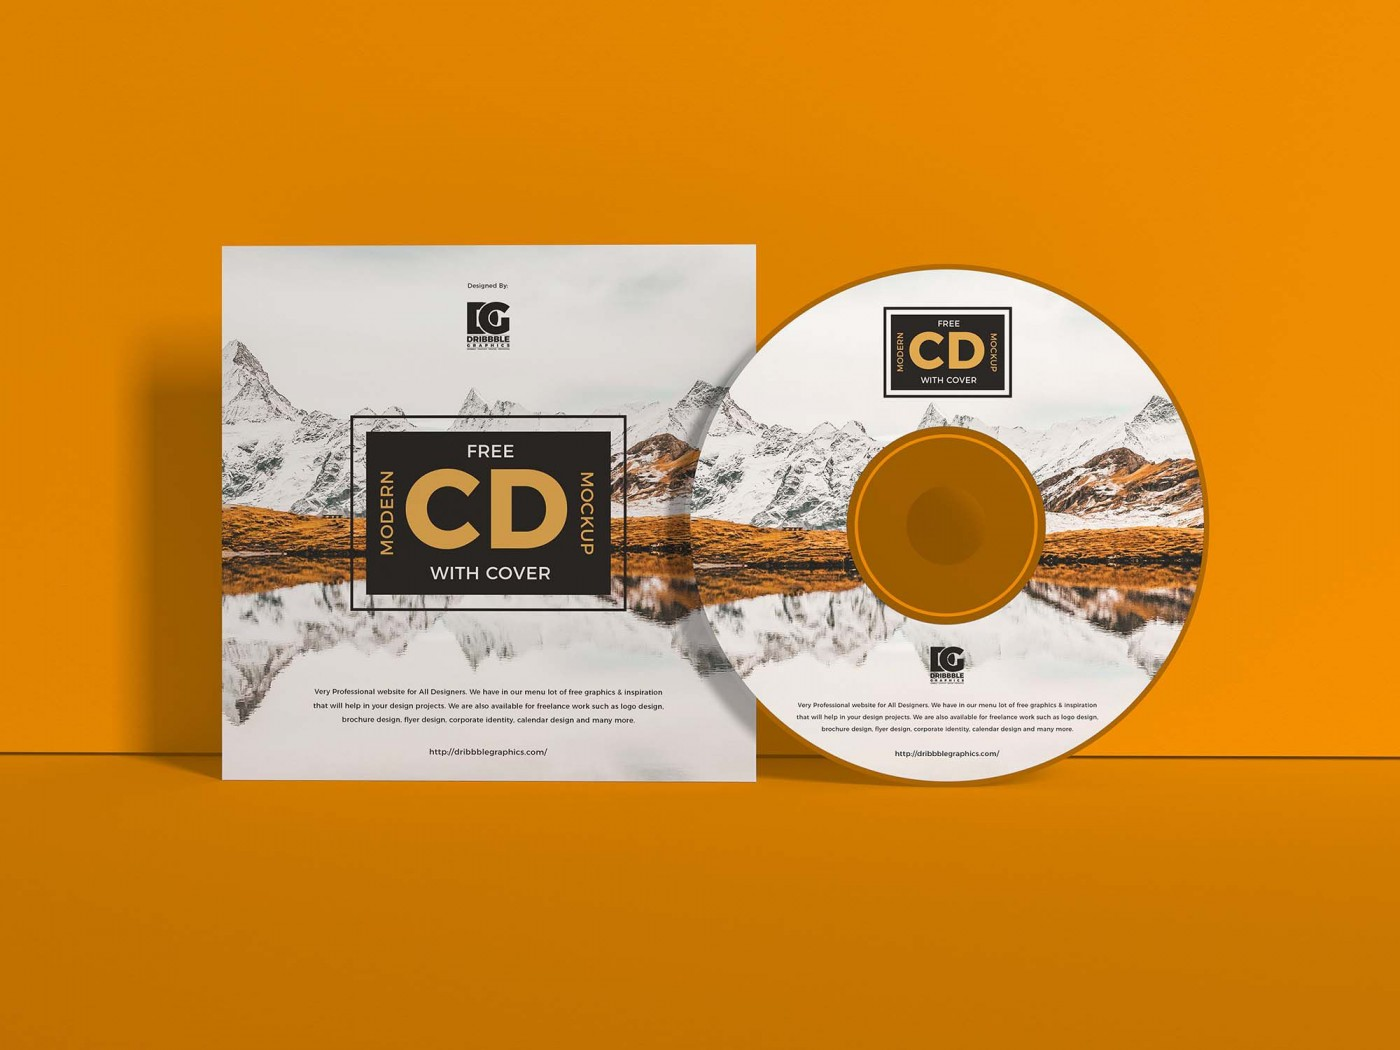 004 Beautiful Free Cd Cover Design Template Photoshop High Definition  Label Psd Download1400